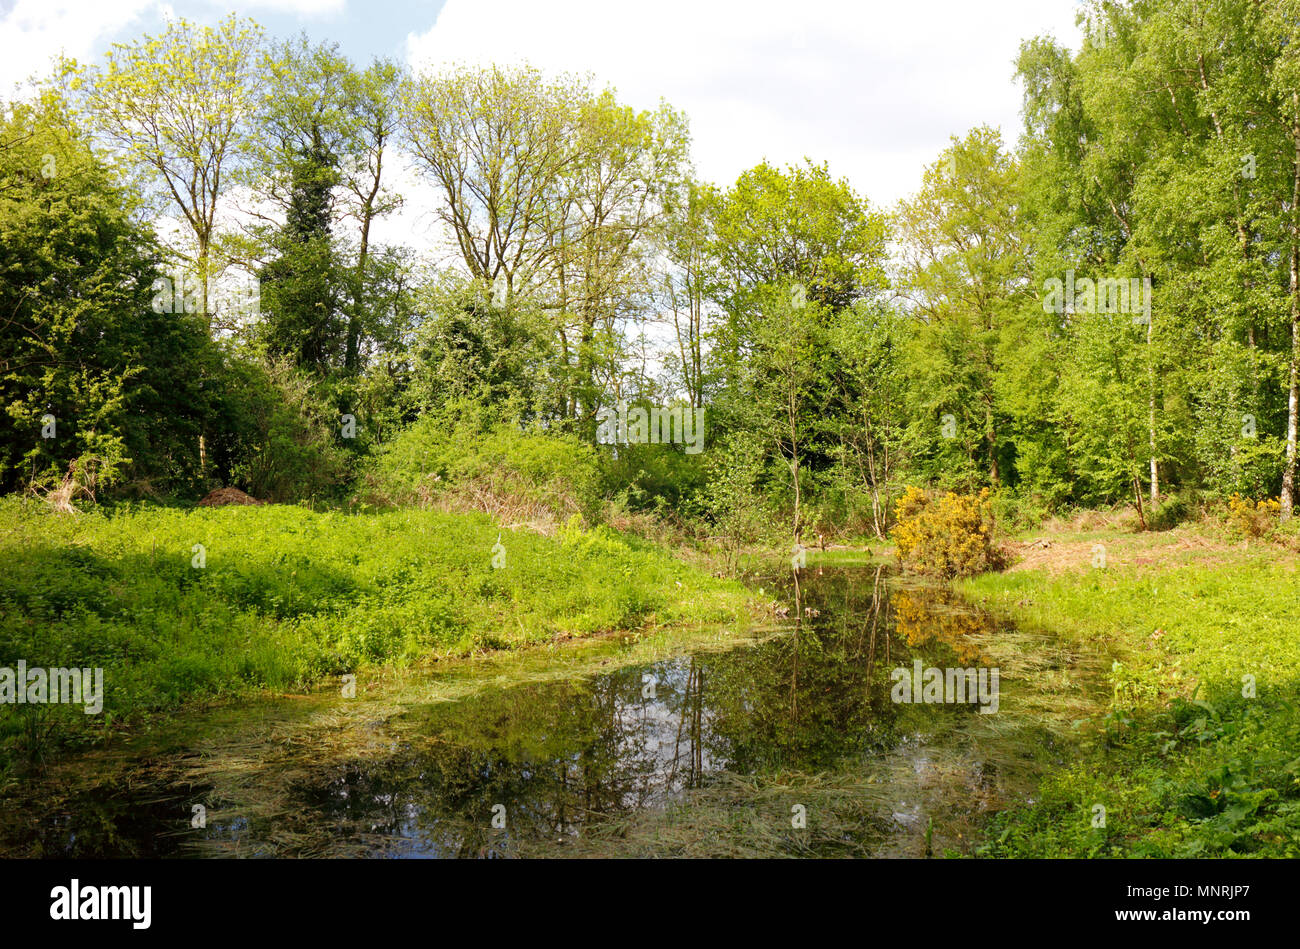 A view of Alderford Common Site of Special Scientific Interest and nature reserve at Alderford, Norfolk, England, United Kingdom, Europe. - Stock Image